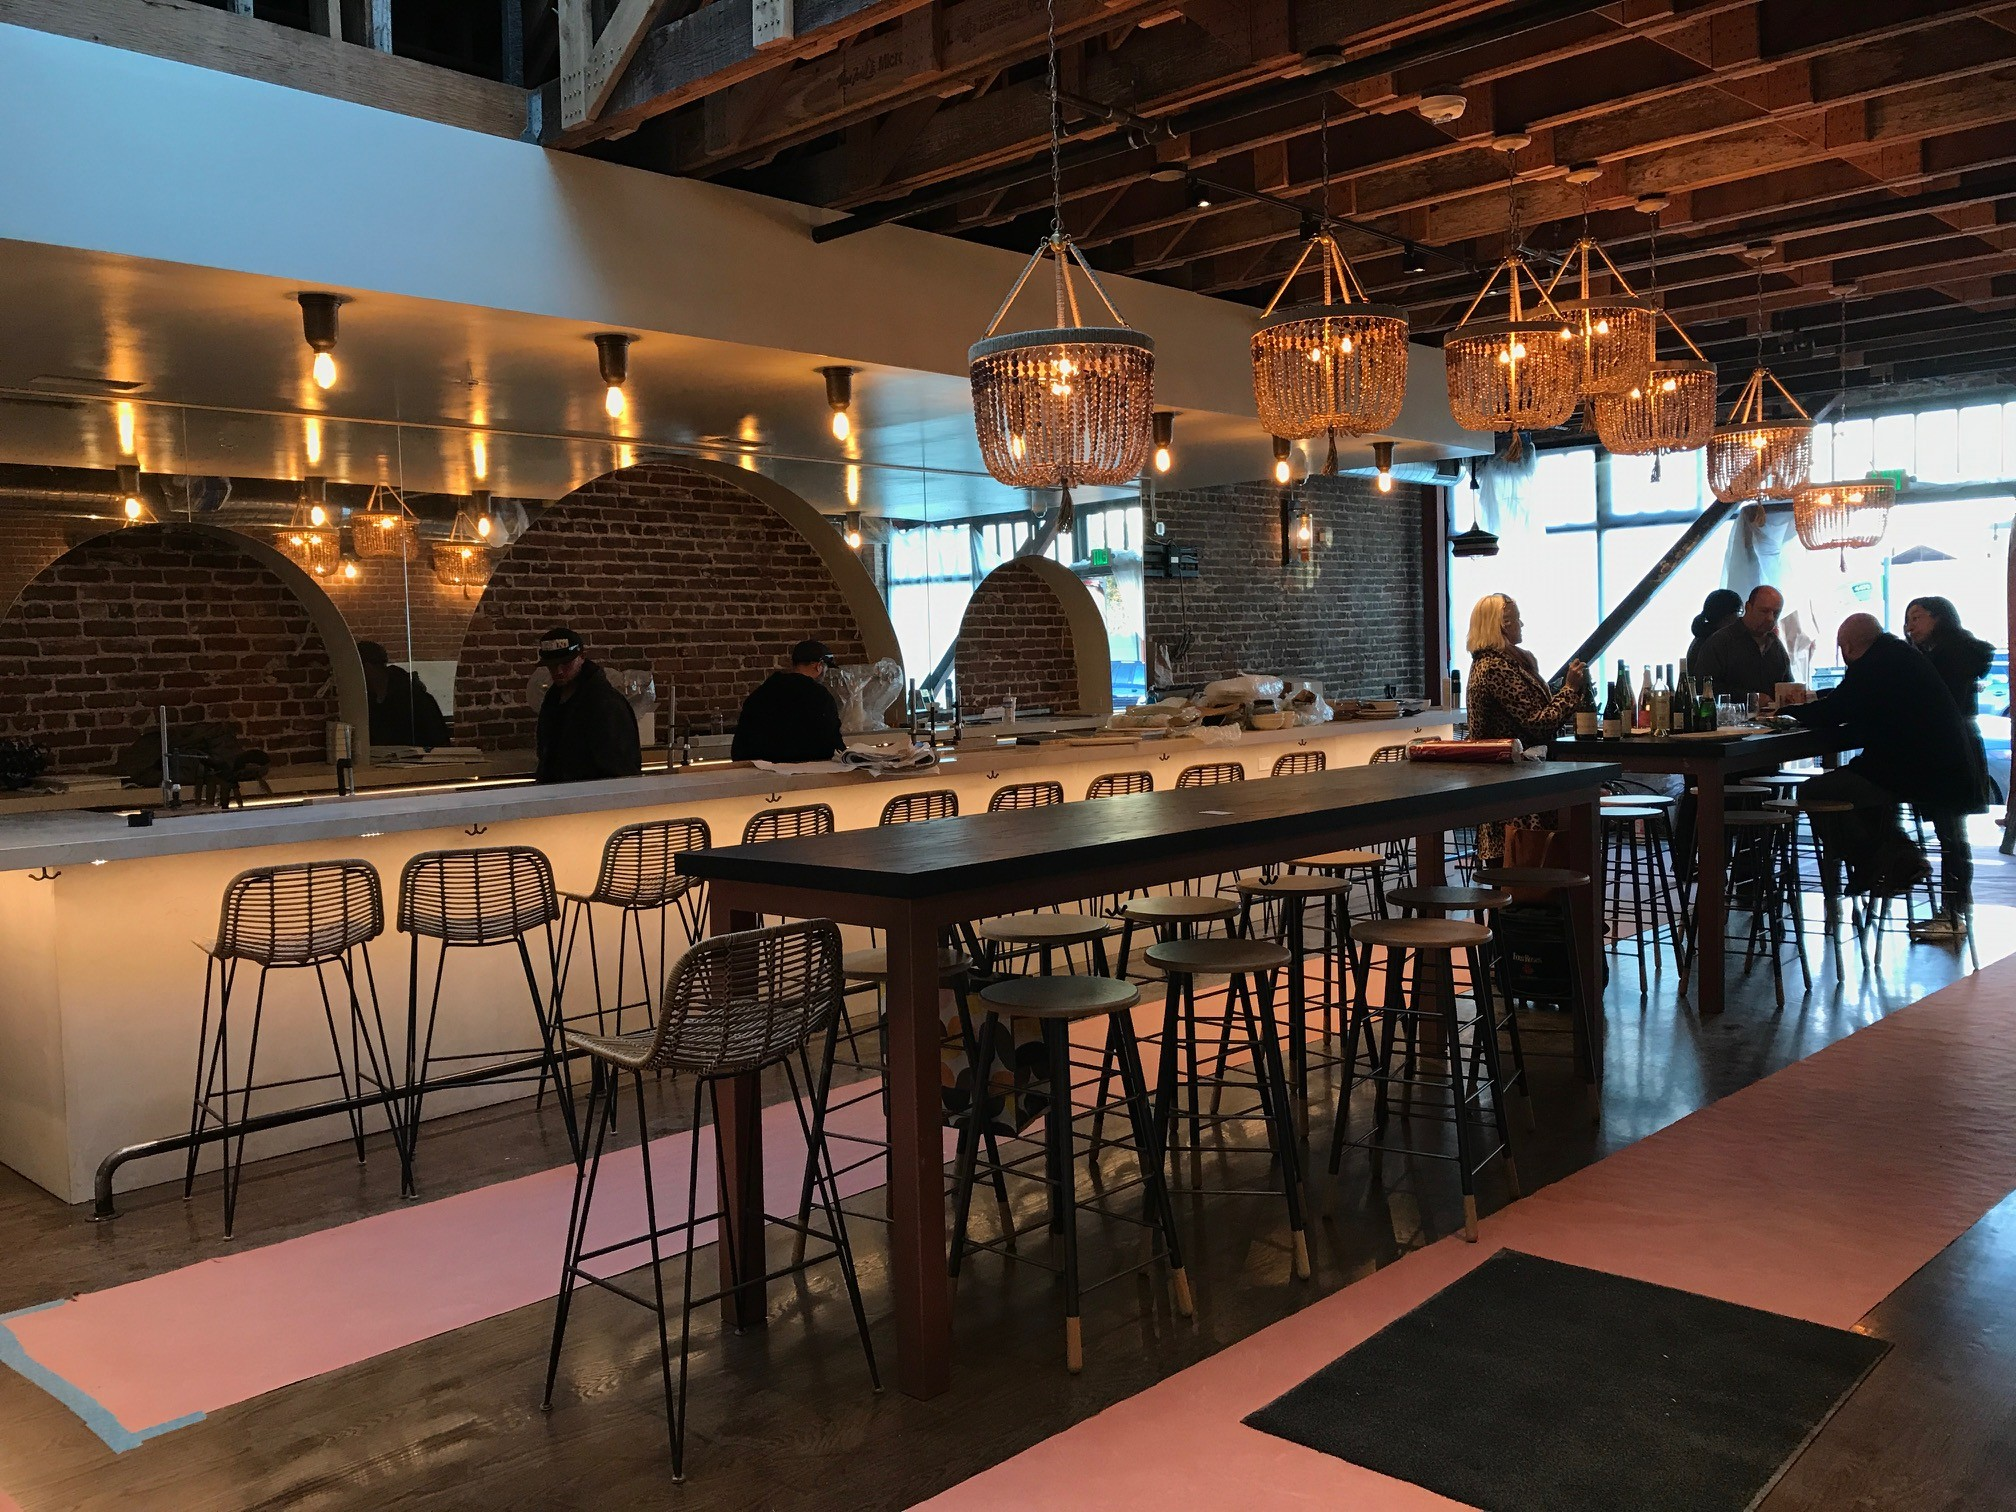 Oeste bar kitchen now open in old oakland food drink for Food bar oakland